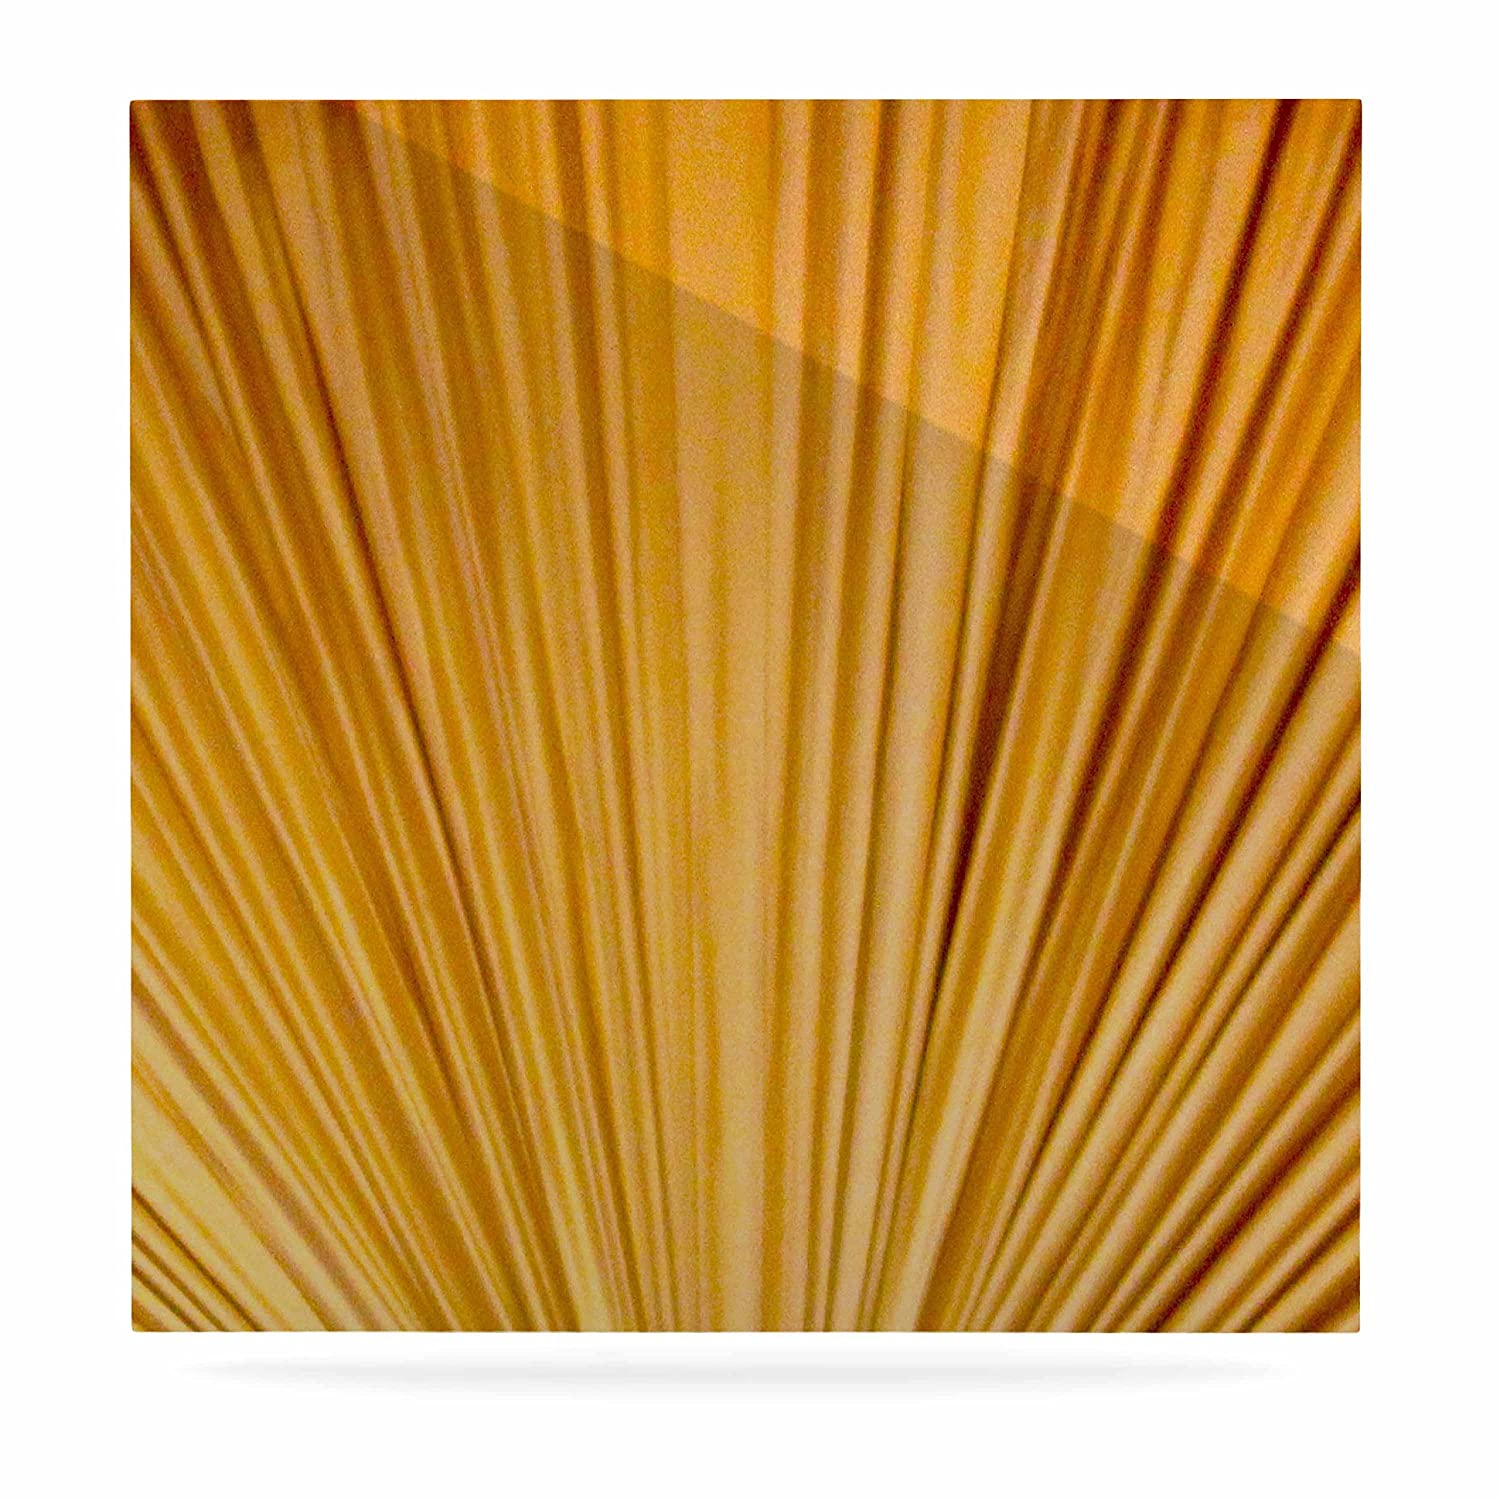 8 by 8 Kess InHouse Philip Brown Golden Curtains Orange Abstract Luxe Square Panel 8 by 8